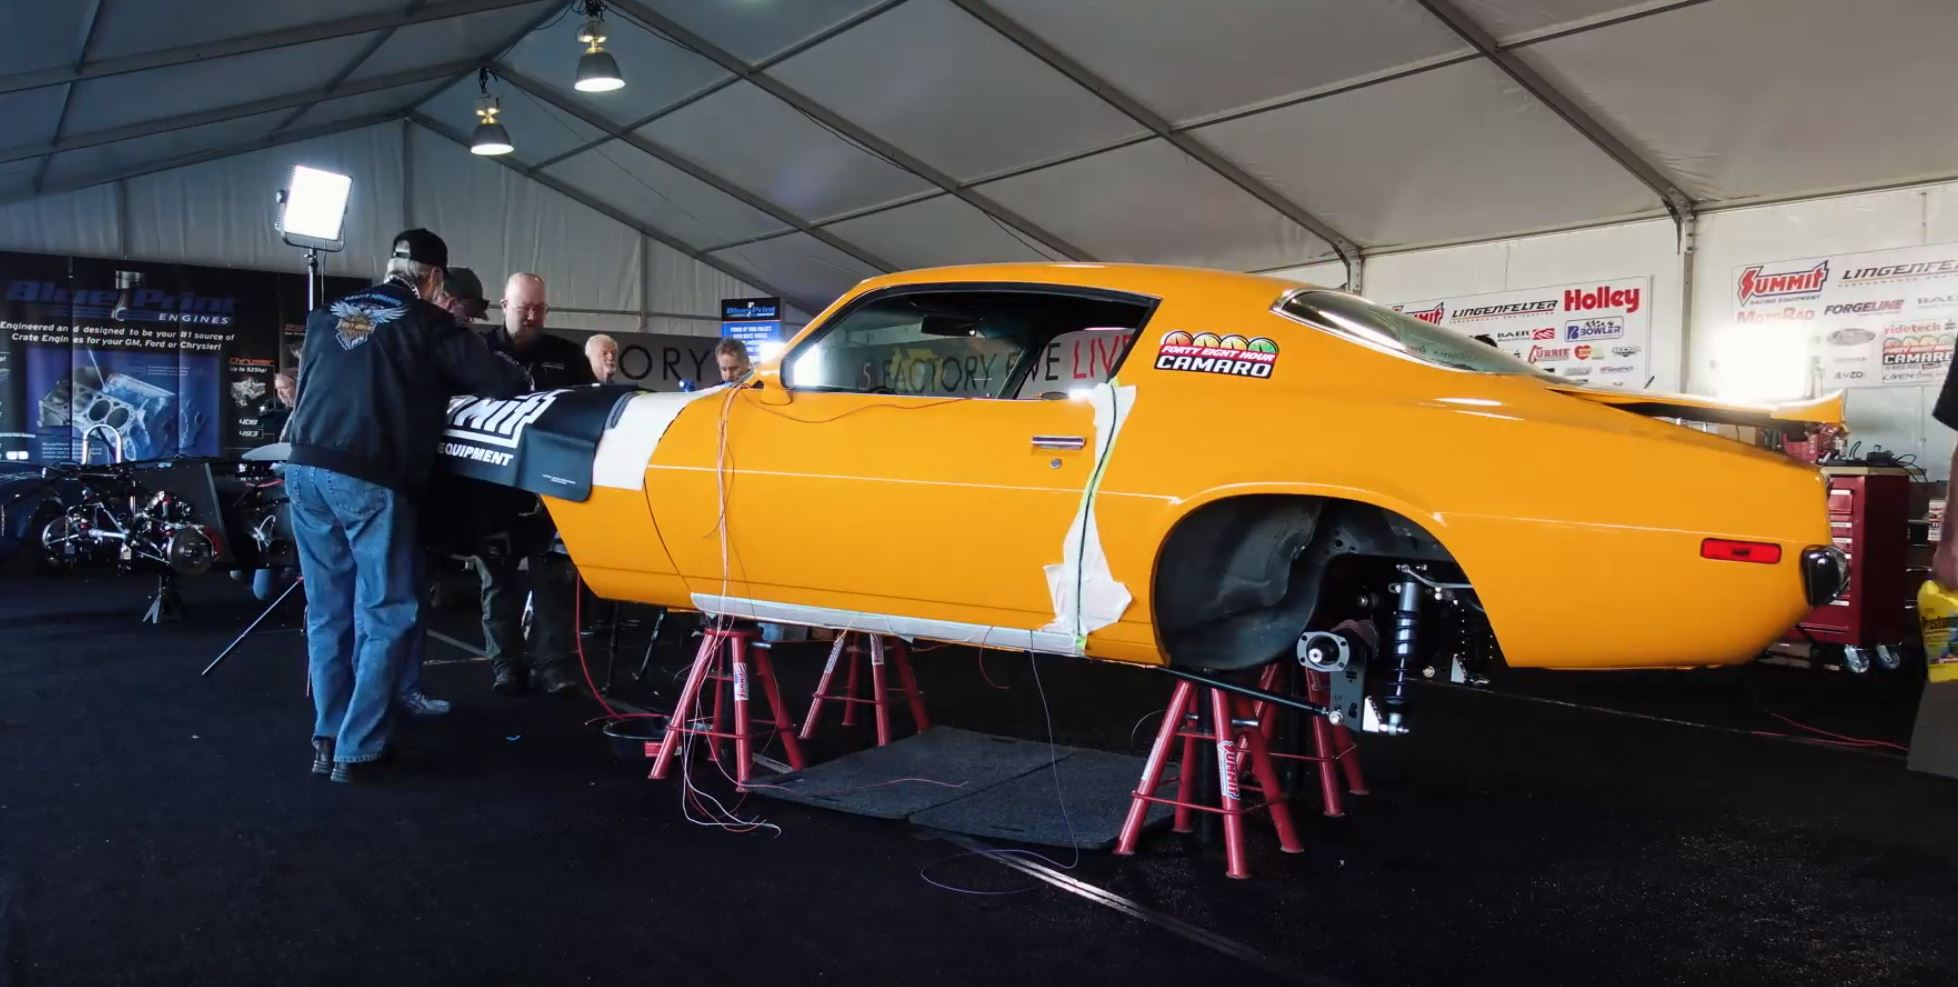 Here's The Day 5 Update From The 48-Hour Camaro Build We're Doing At Barrett-Jackson Scottsdale!